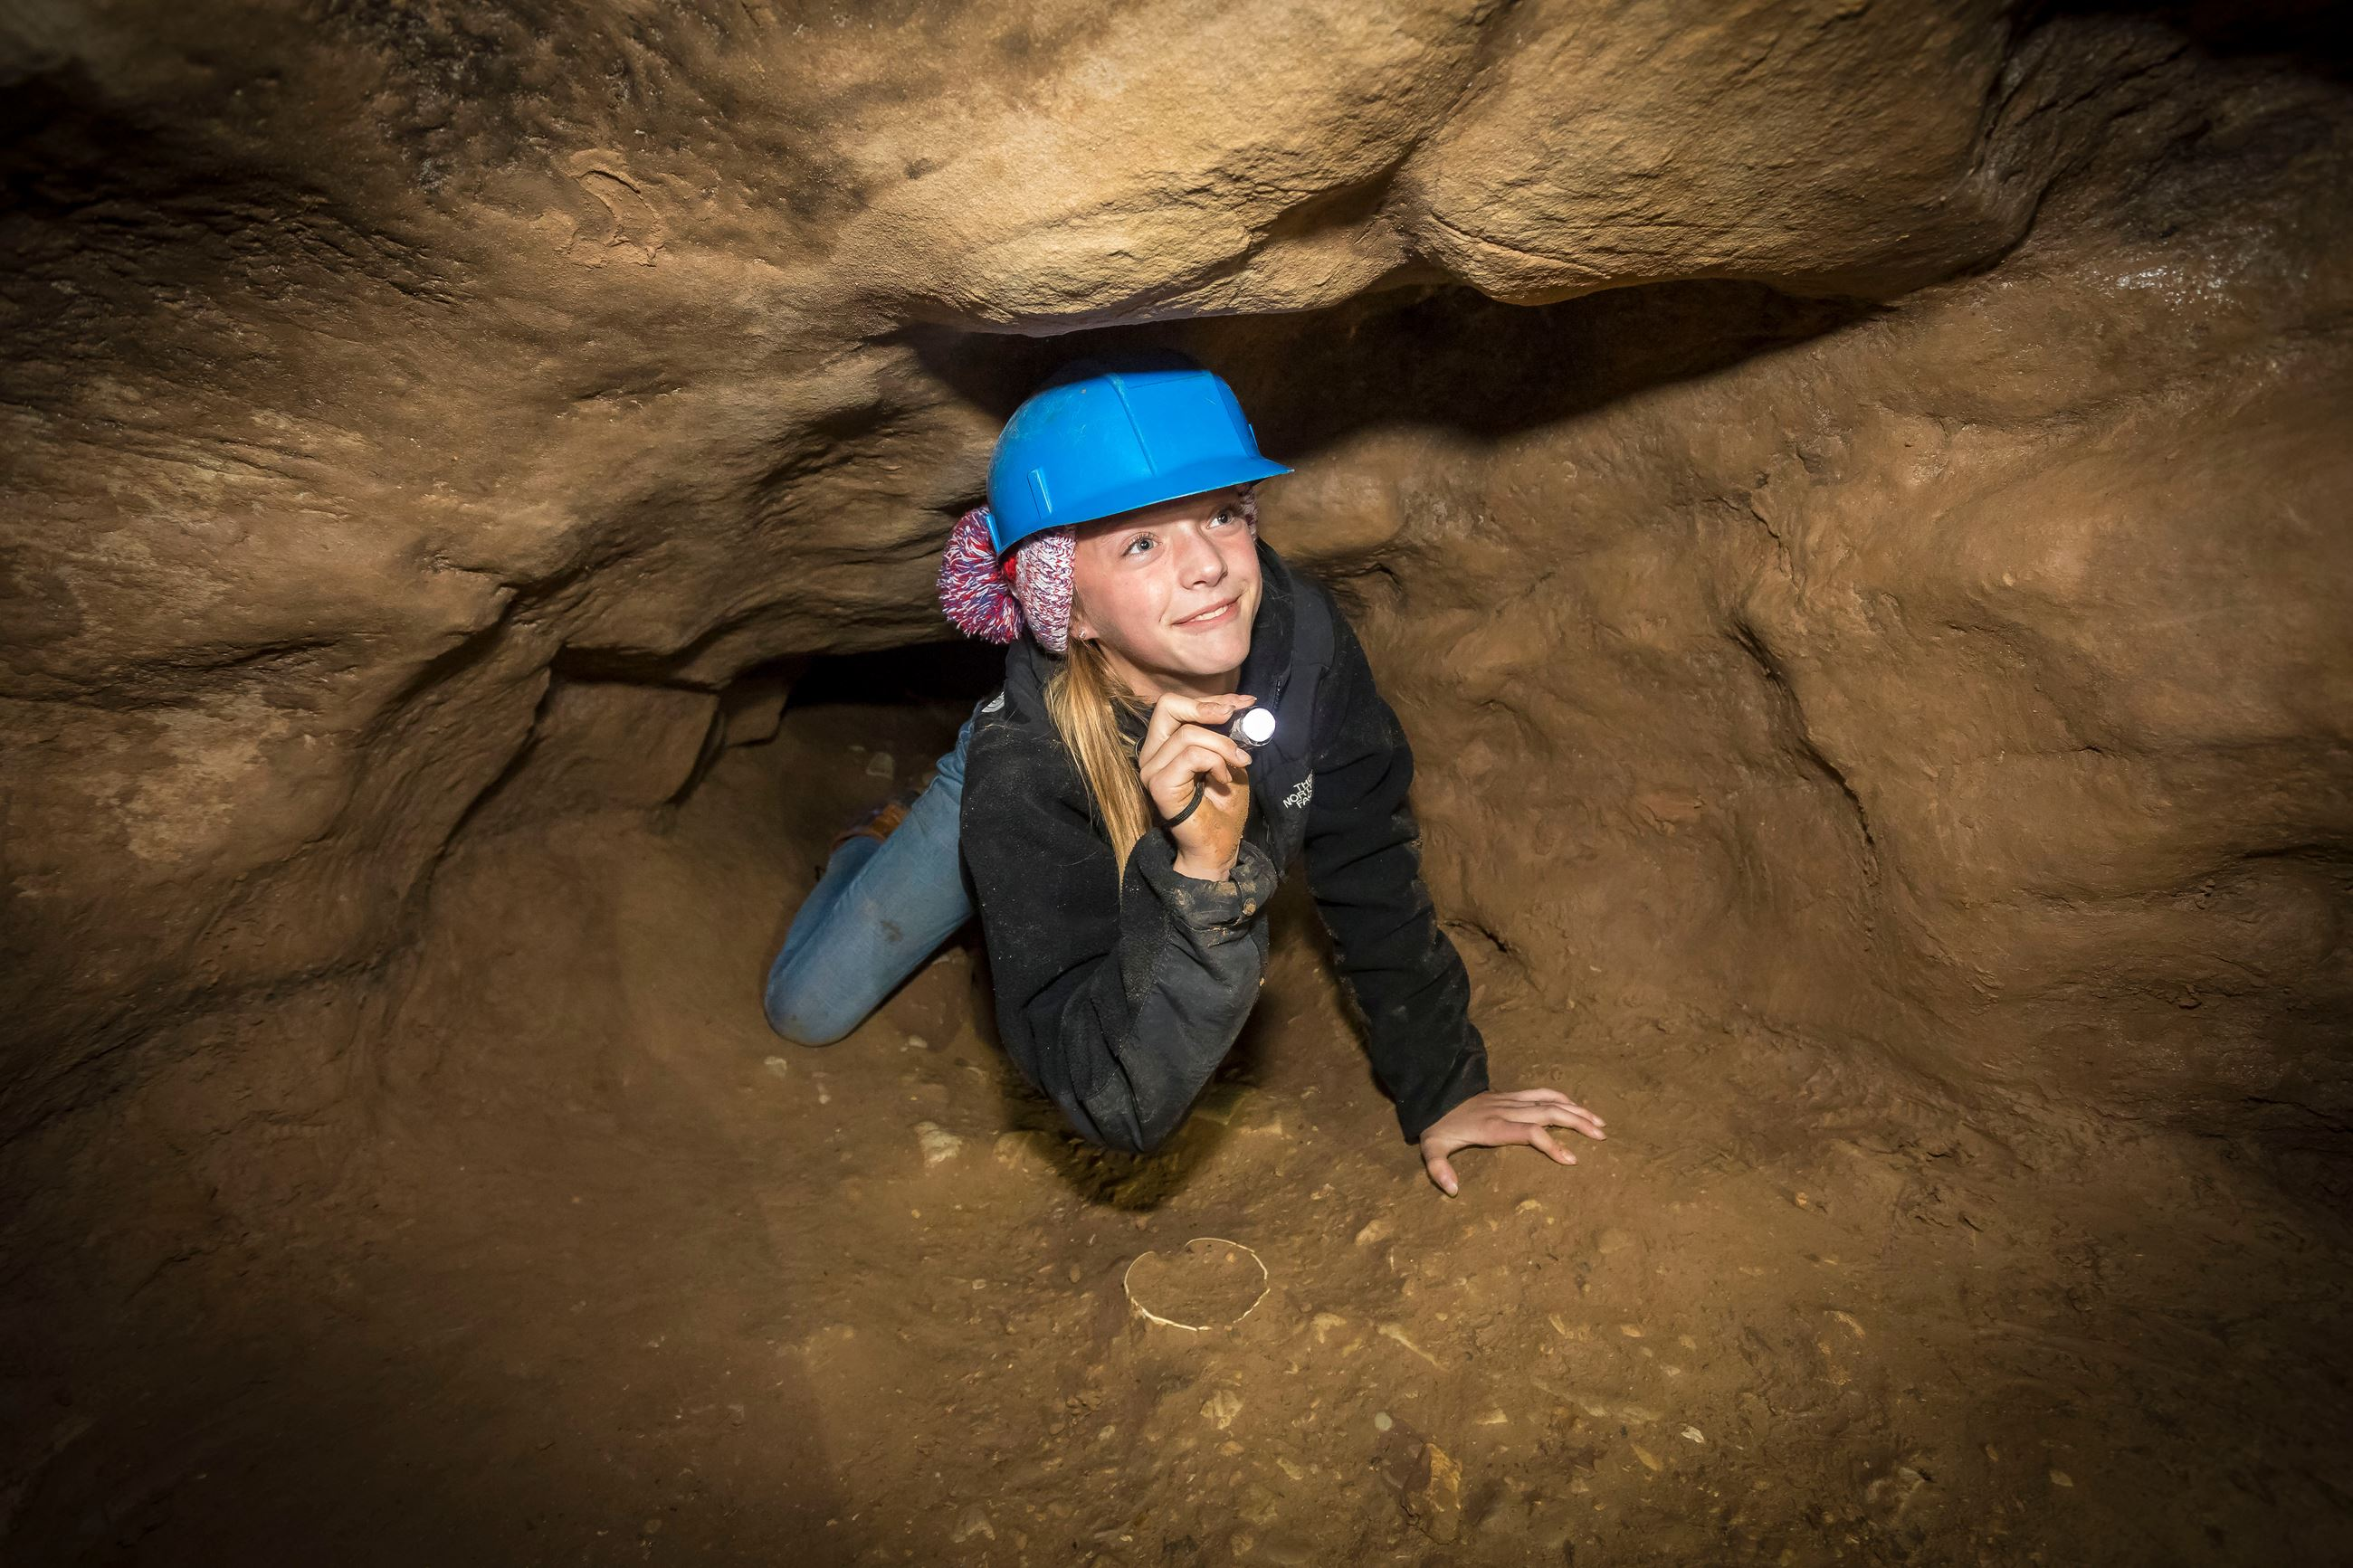 A girl wearing a blue helmet and holding a flashlight is crawling on her hands and knees through a t